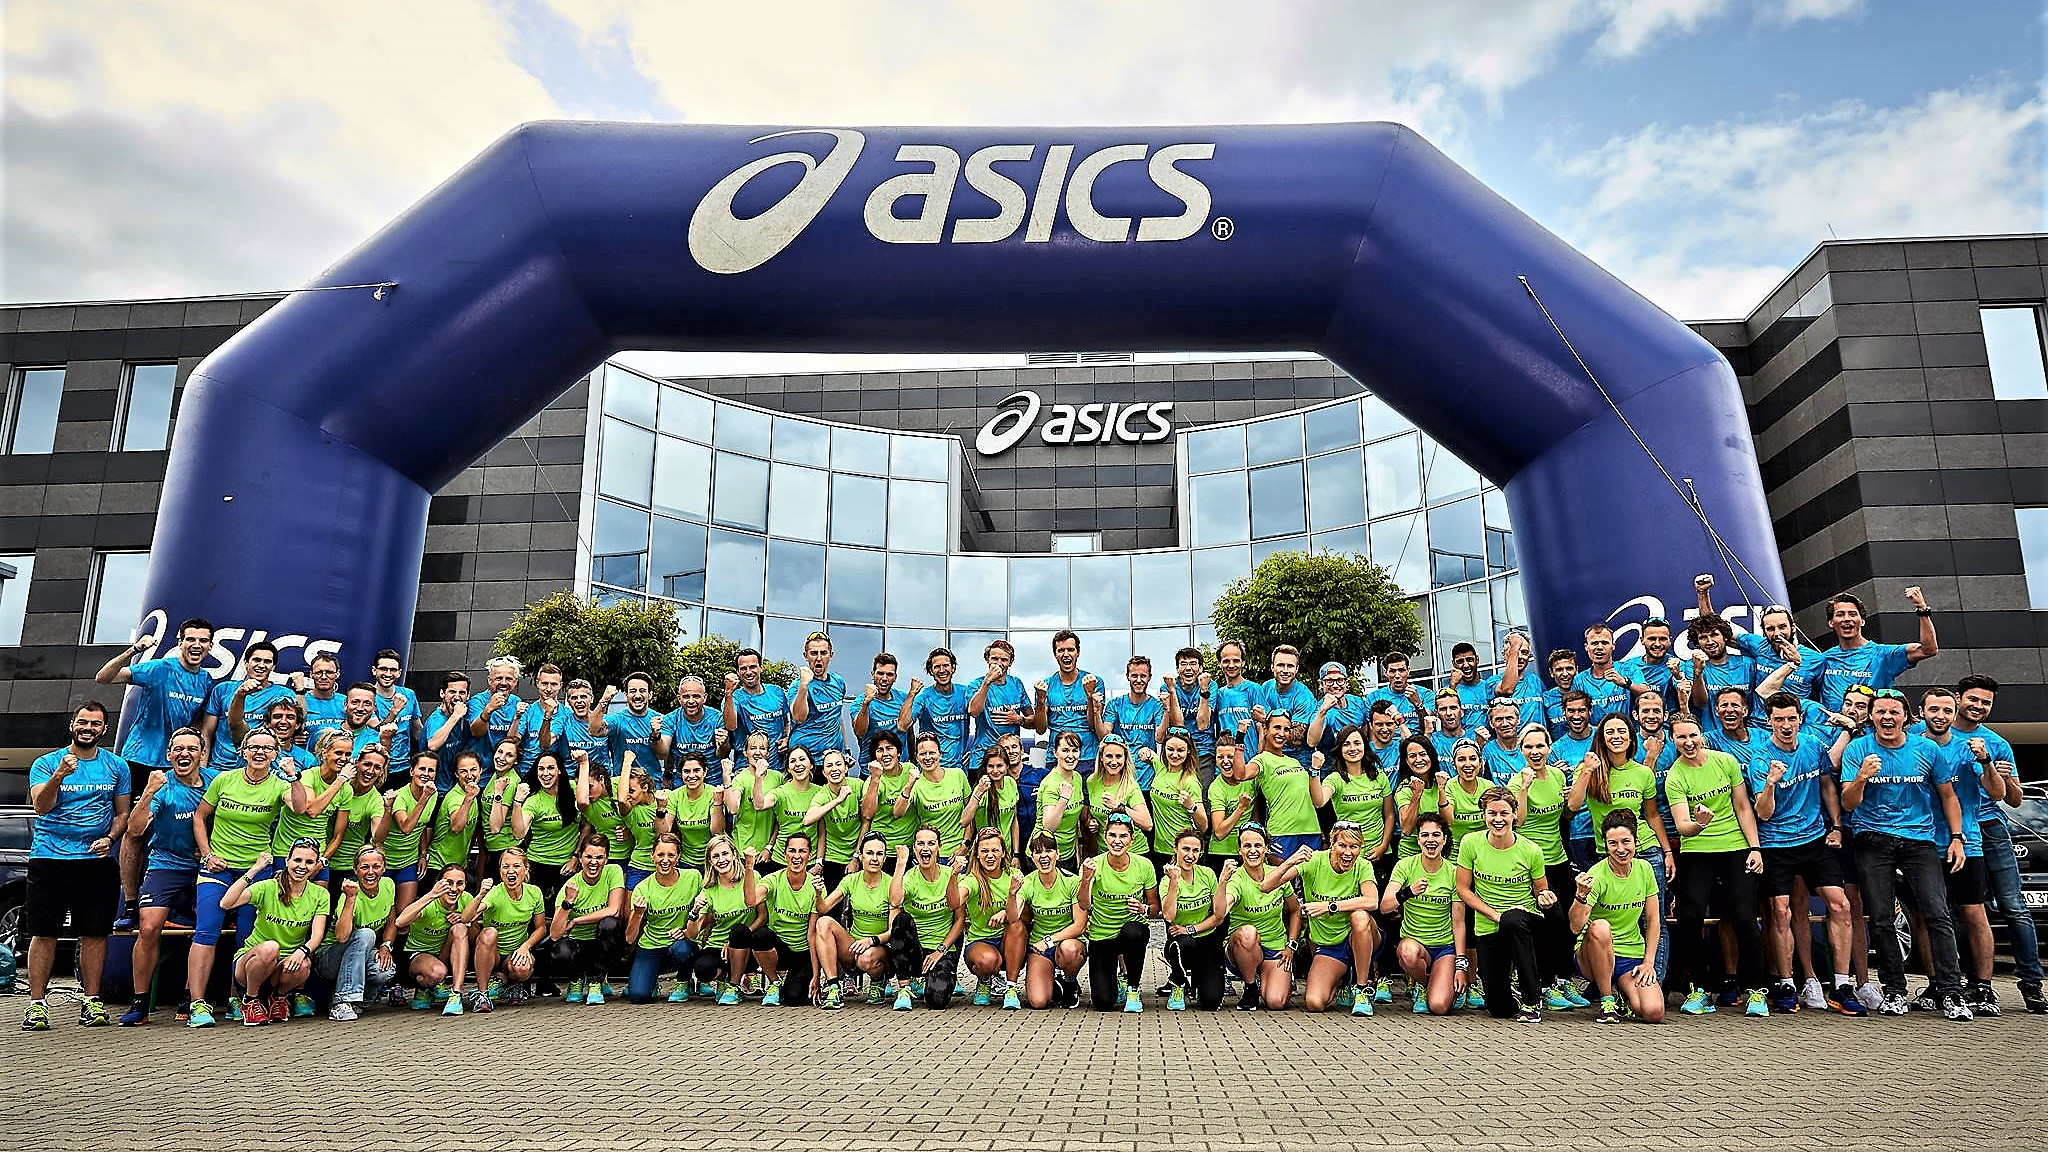 Opblaasbare boog - Publiair voor Asics finish boog sport evenement inflatable arch sports event